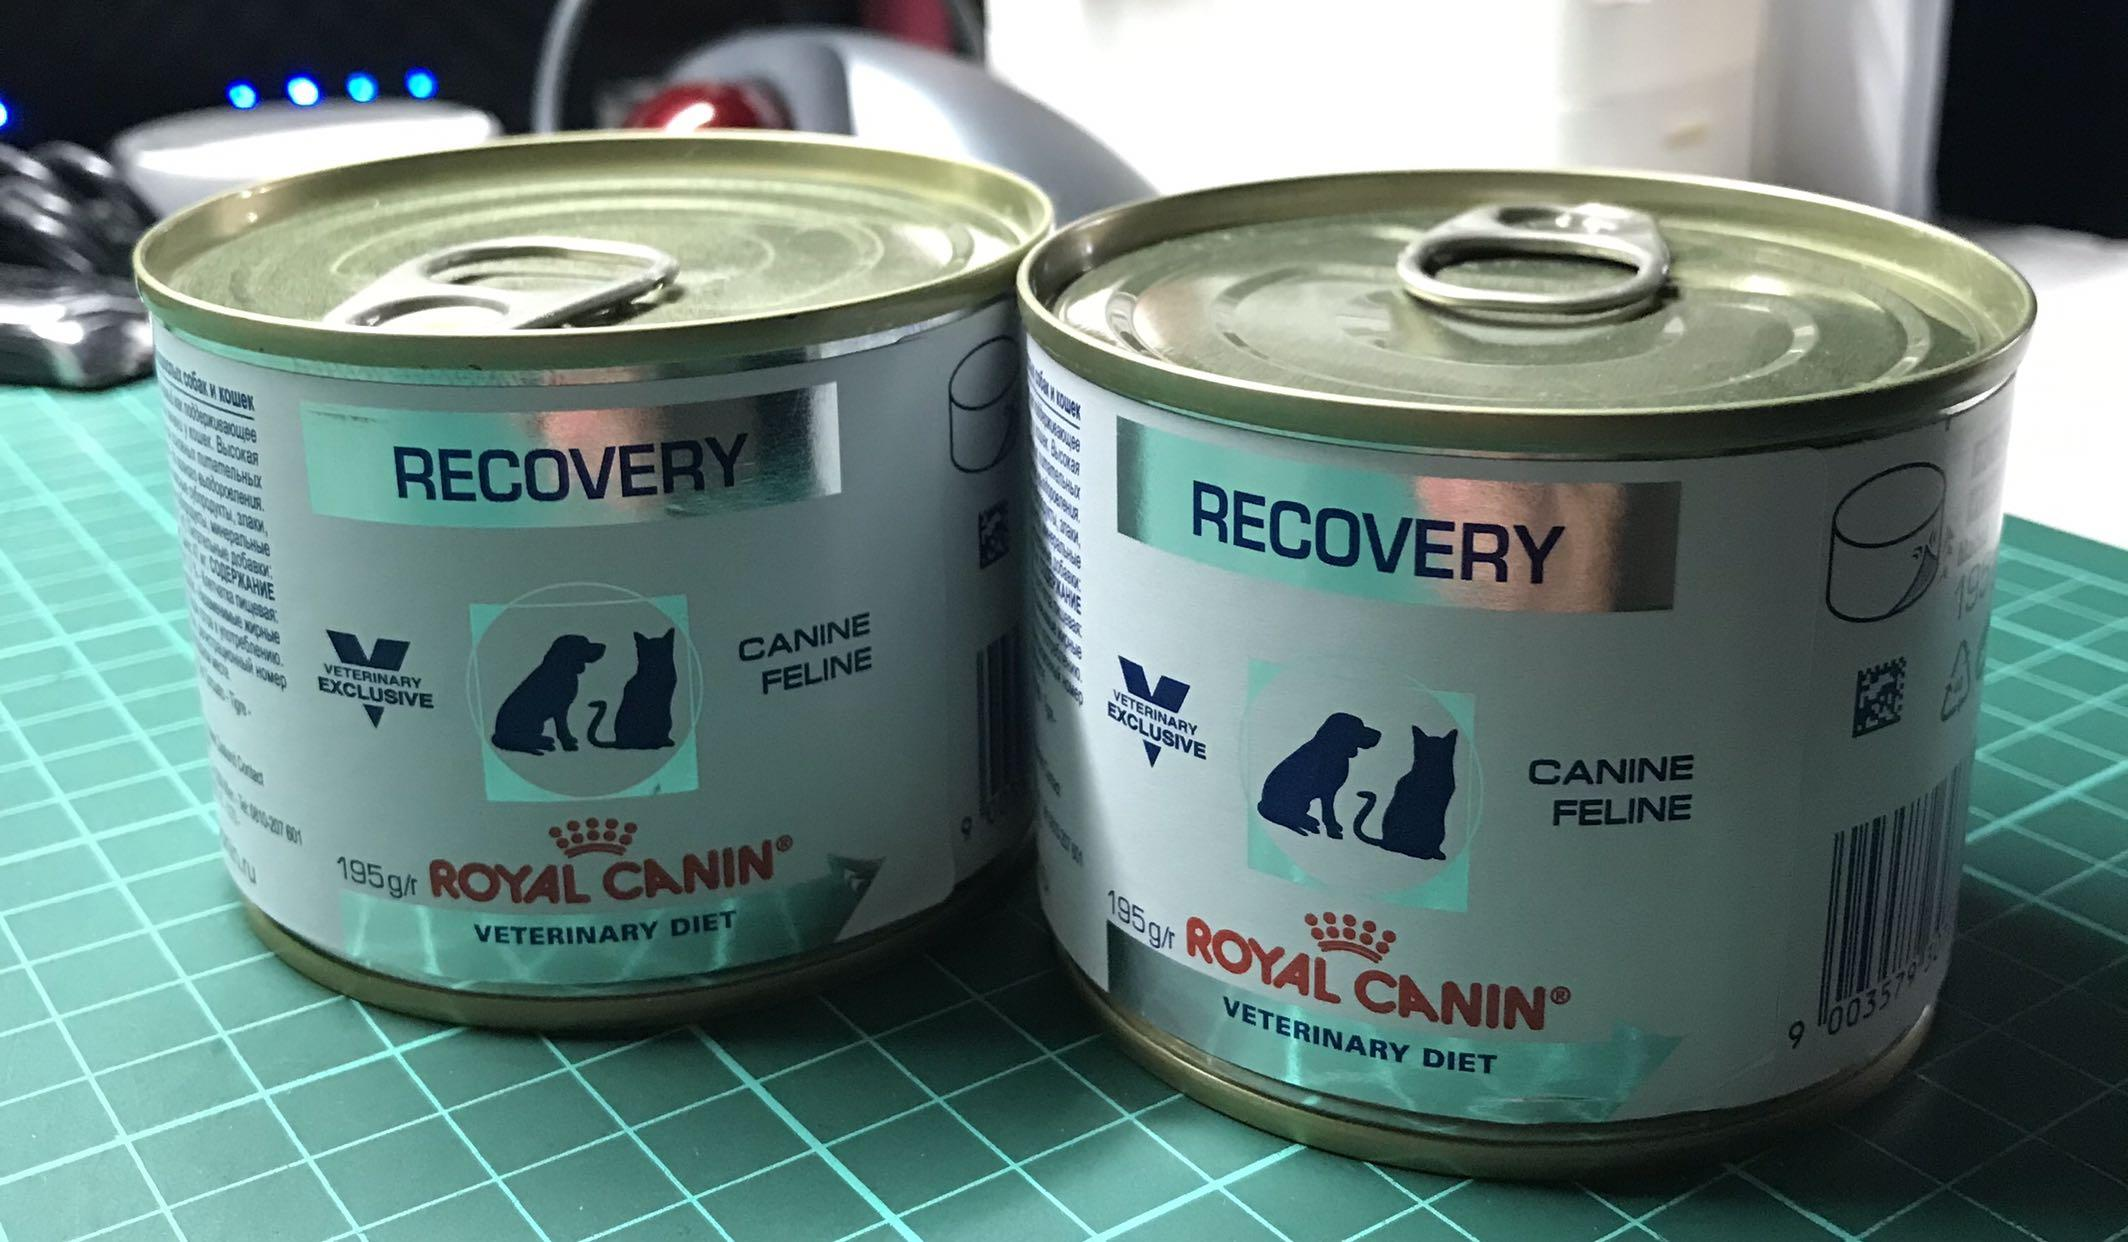 Royal Canin Recovery For Dogs and Cats 法國皇家貓/狗隻康復支援營養罐頭濕糧 195g兩罐